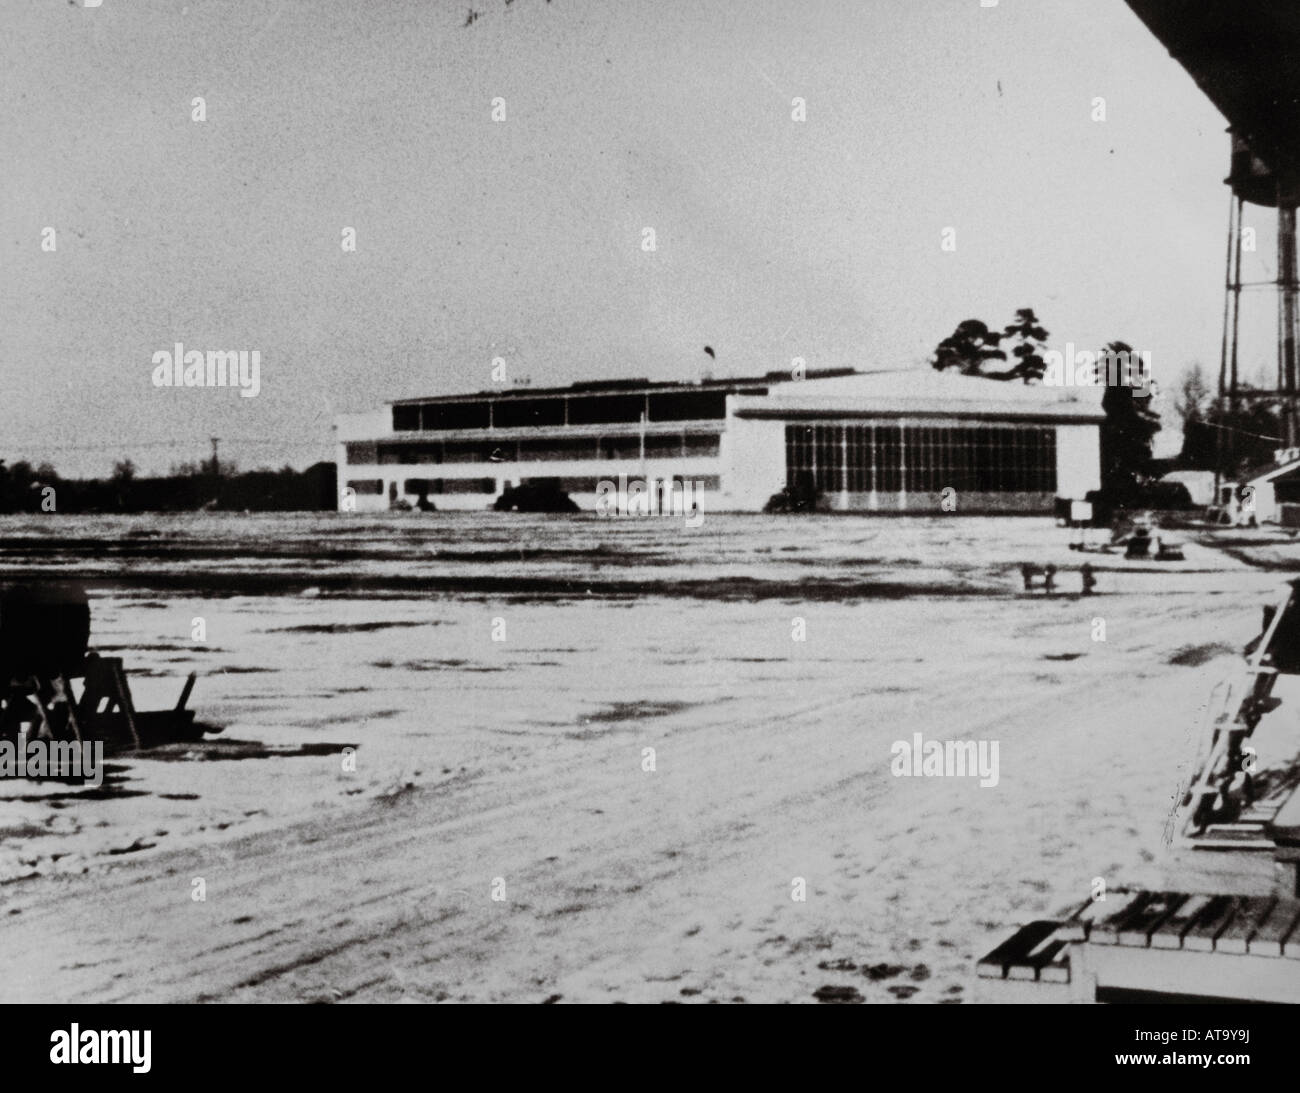 Old Antique Photograph of Original Morris Field Predecessor to Charlotte-Douglas International Airport Displayed - Stock Image